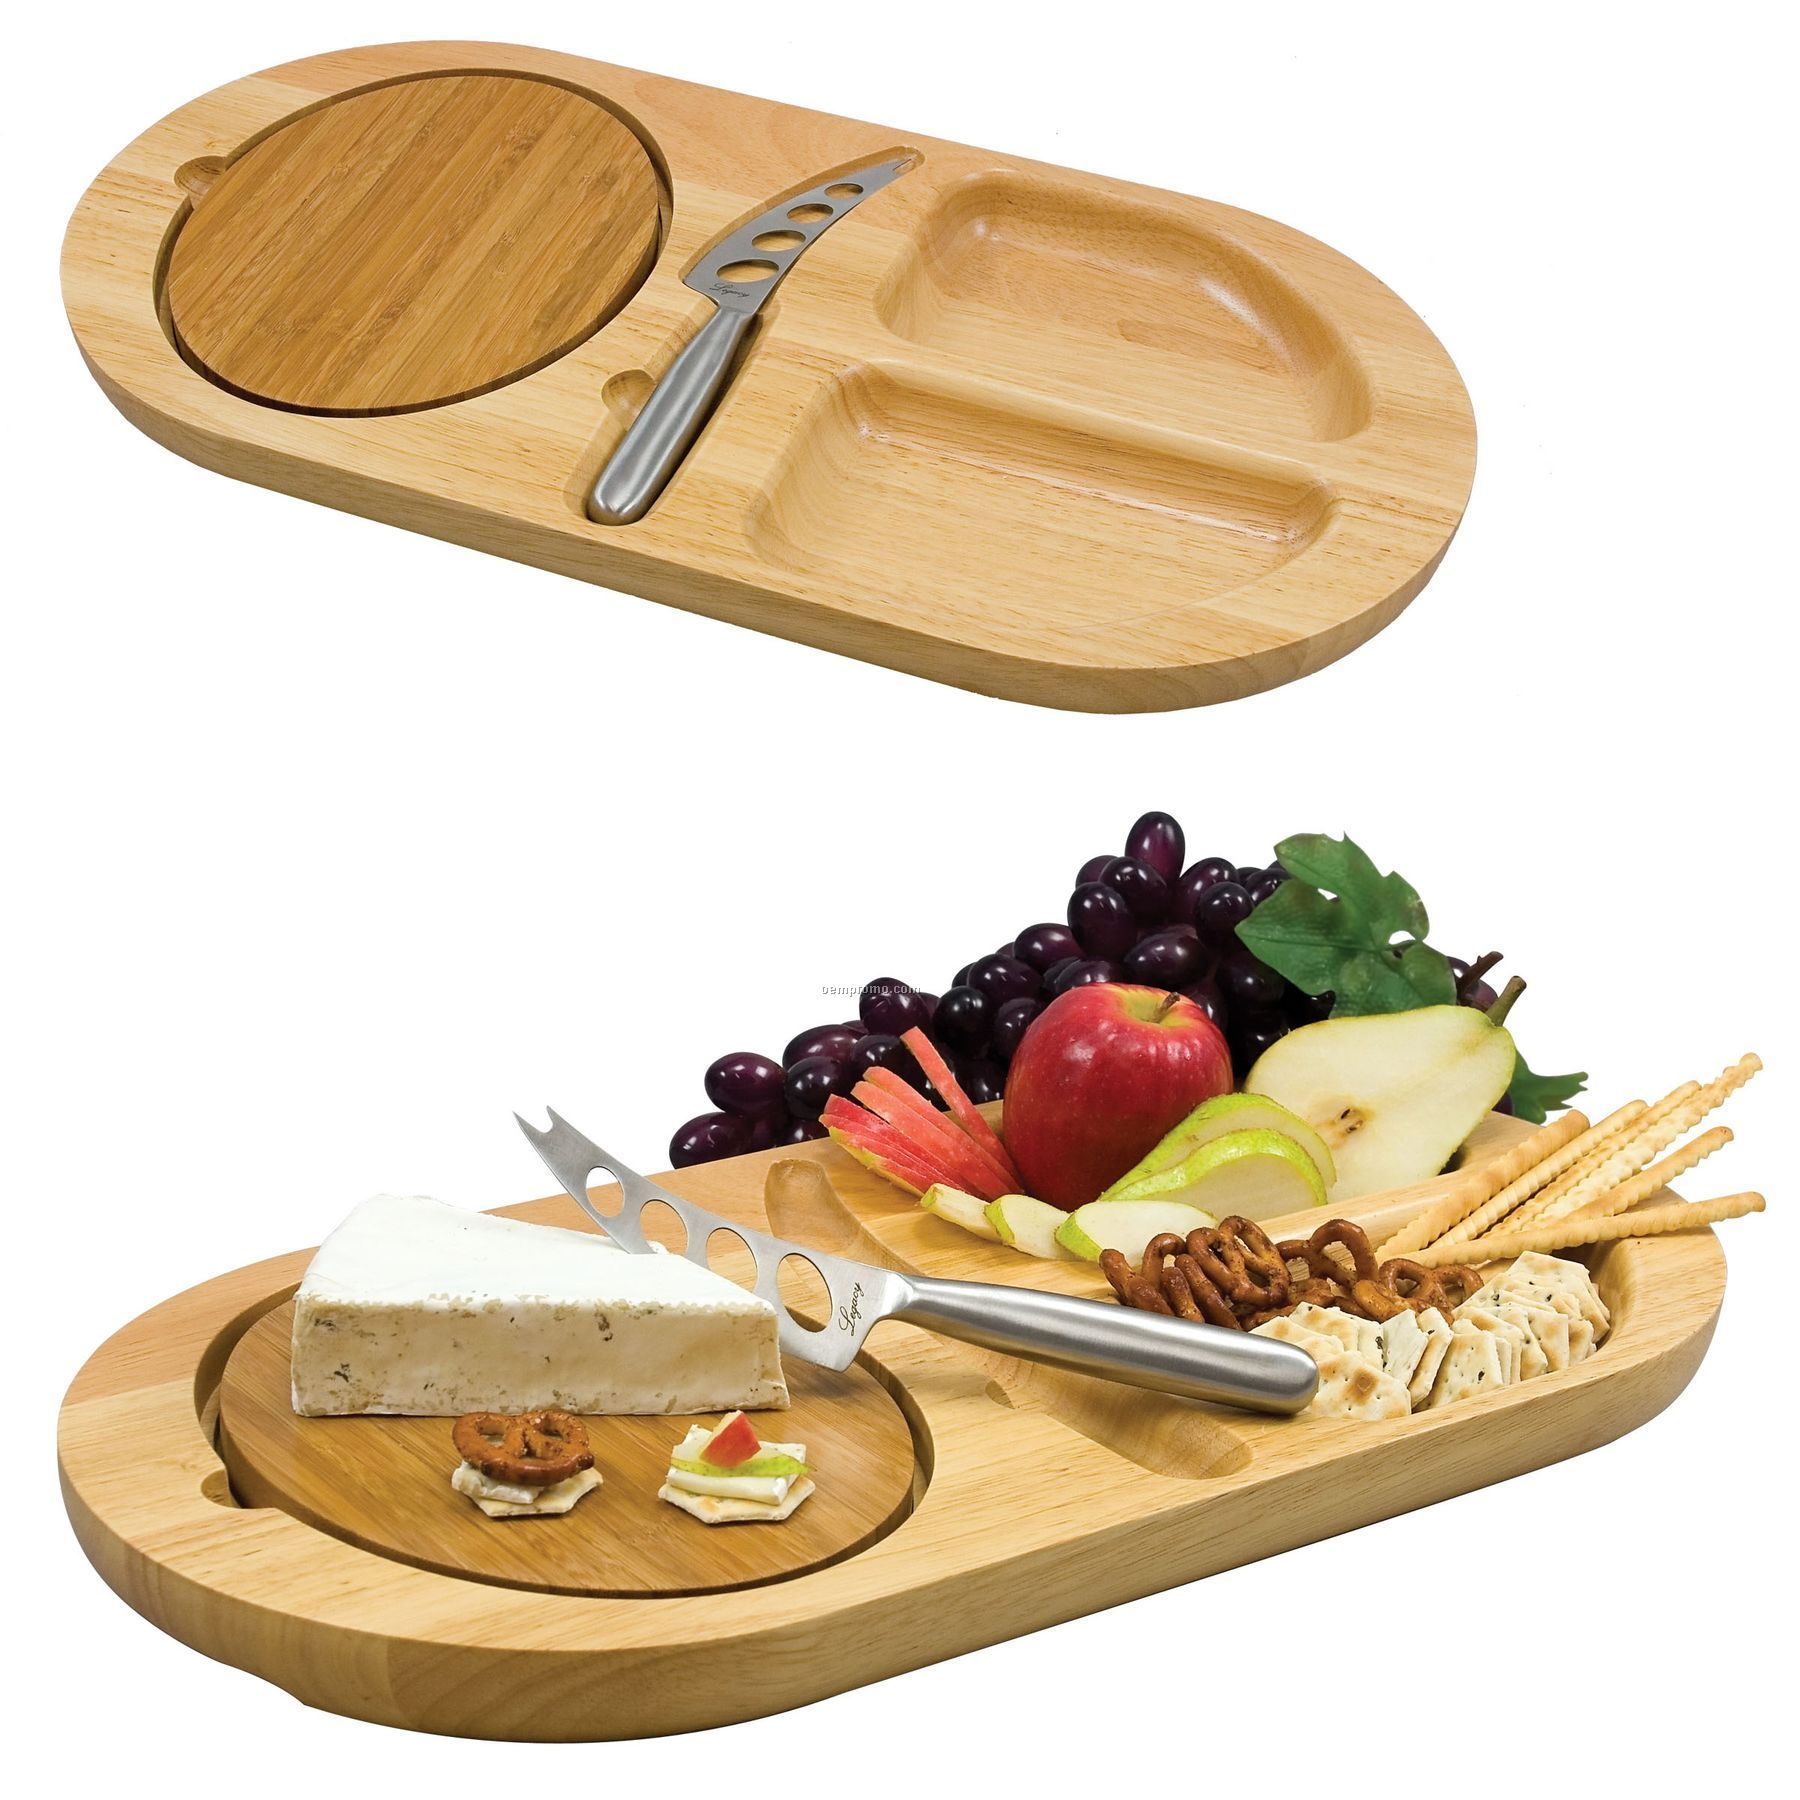 Fontina Oval Wood Serving Tray W/ 2 Carved Moats & Removable Cutting Board